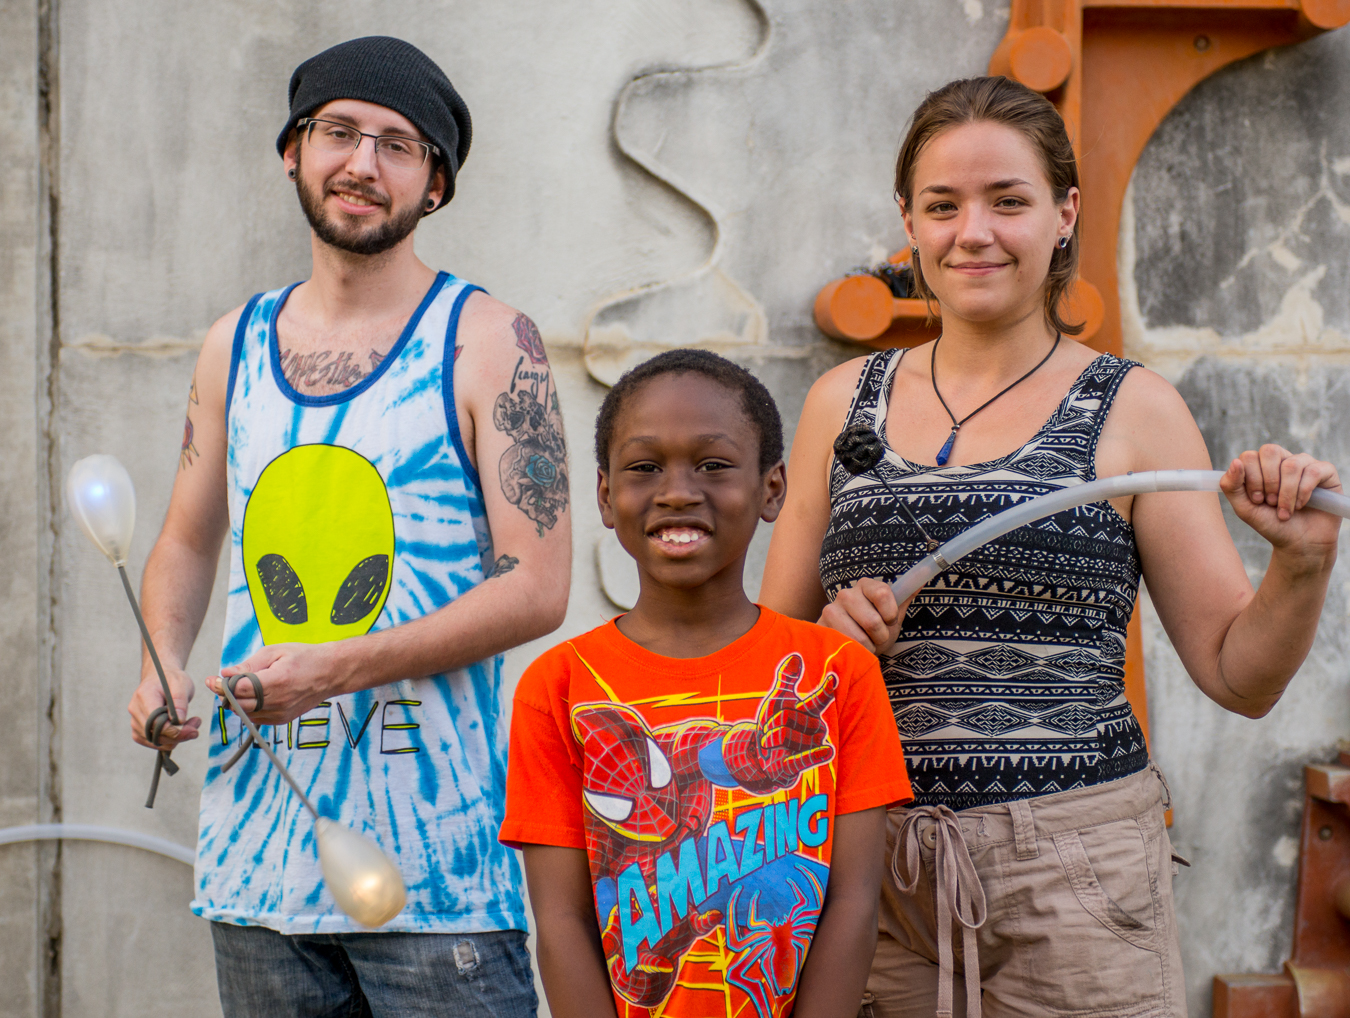 Ryan and Korin, the fire spinners along with a young spectator who wanted his photo taken.